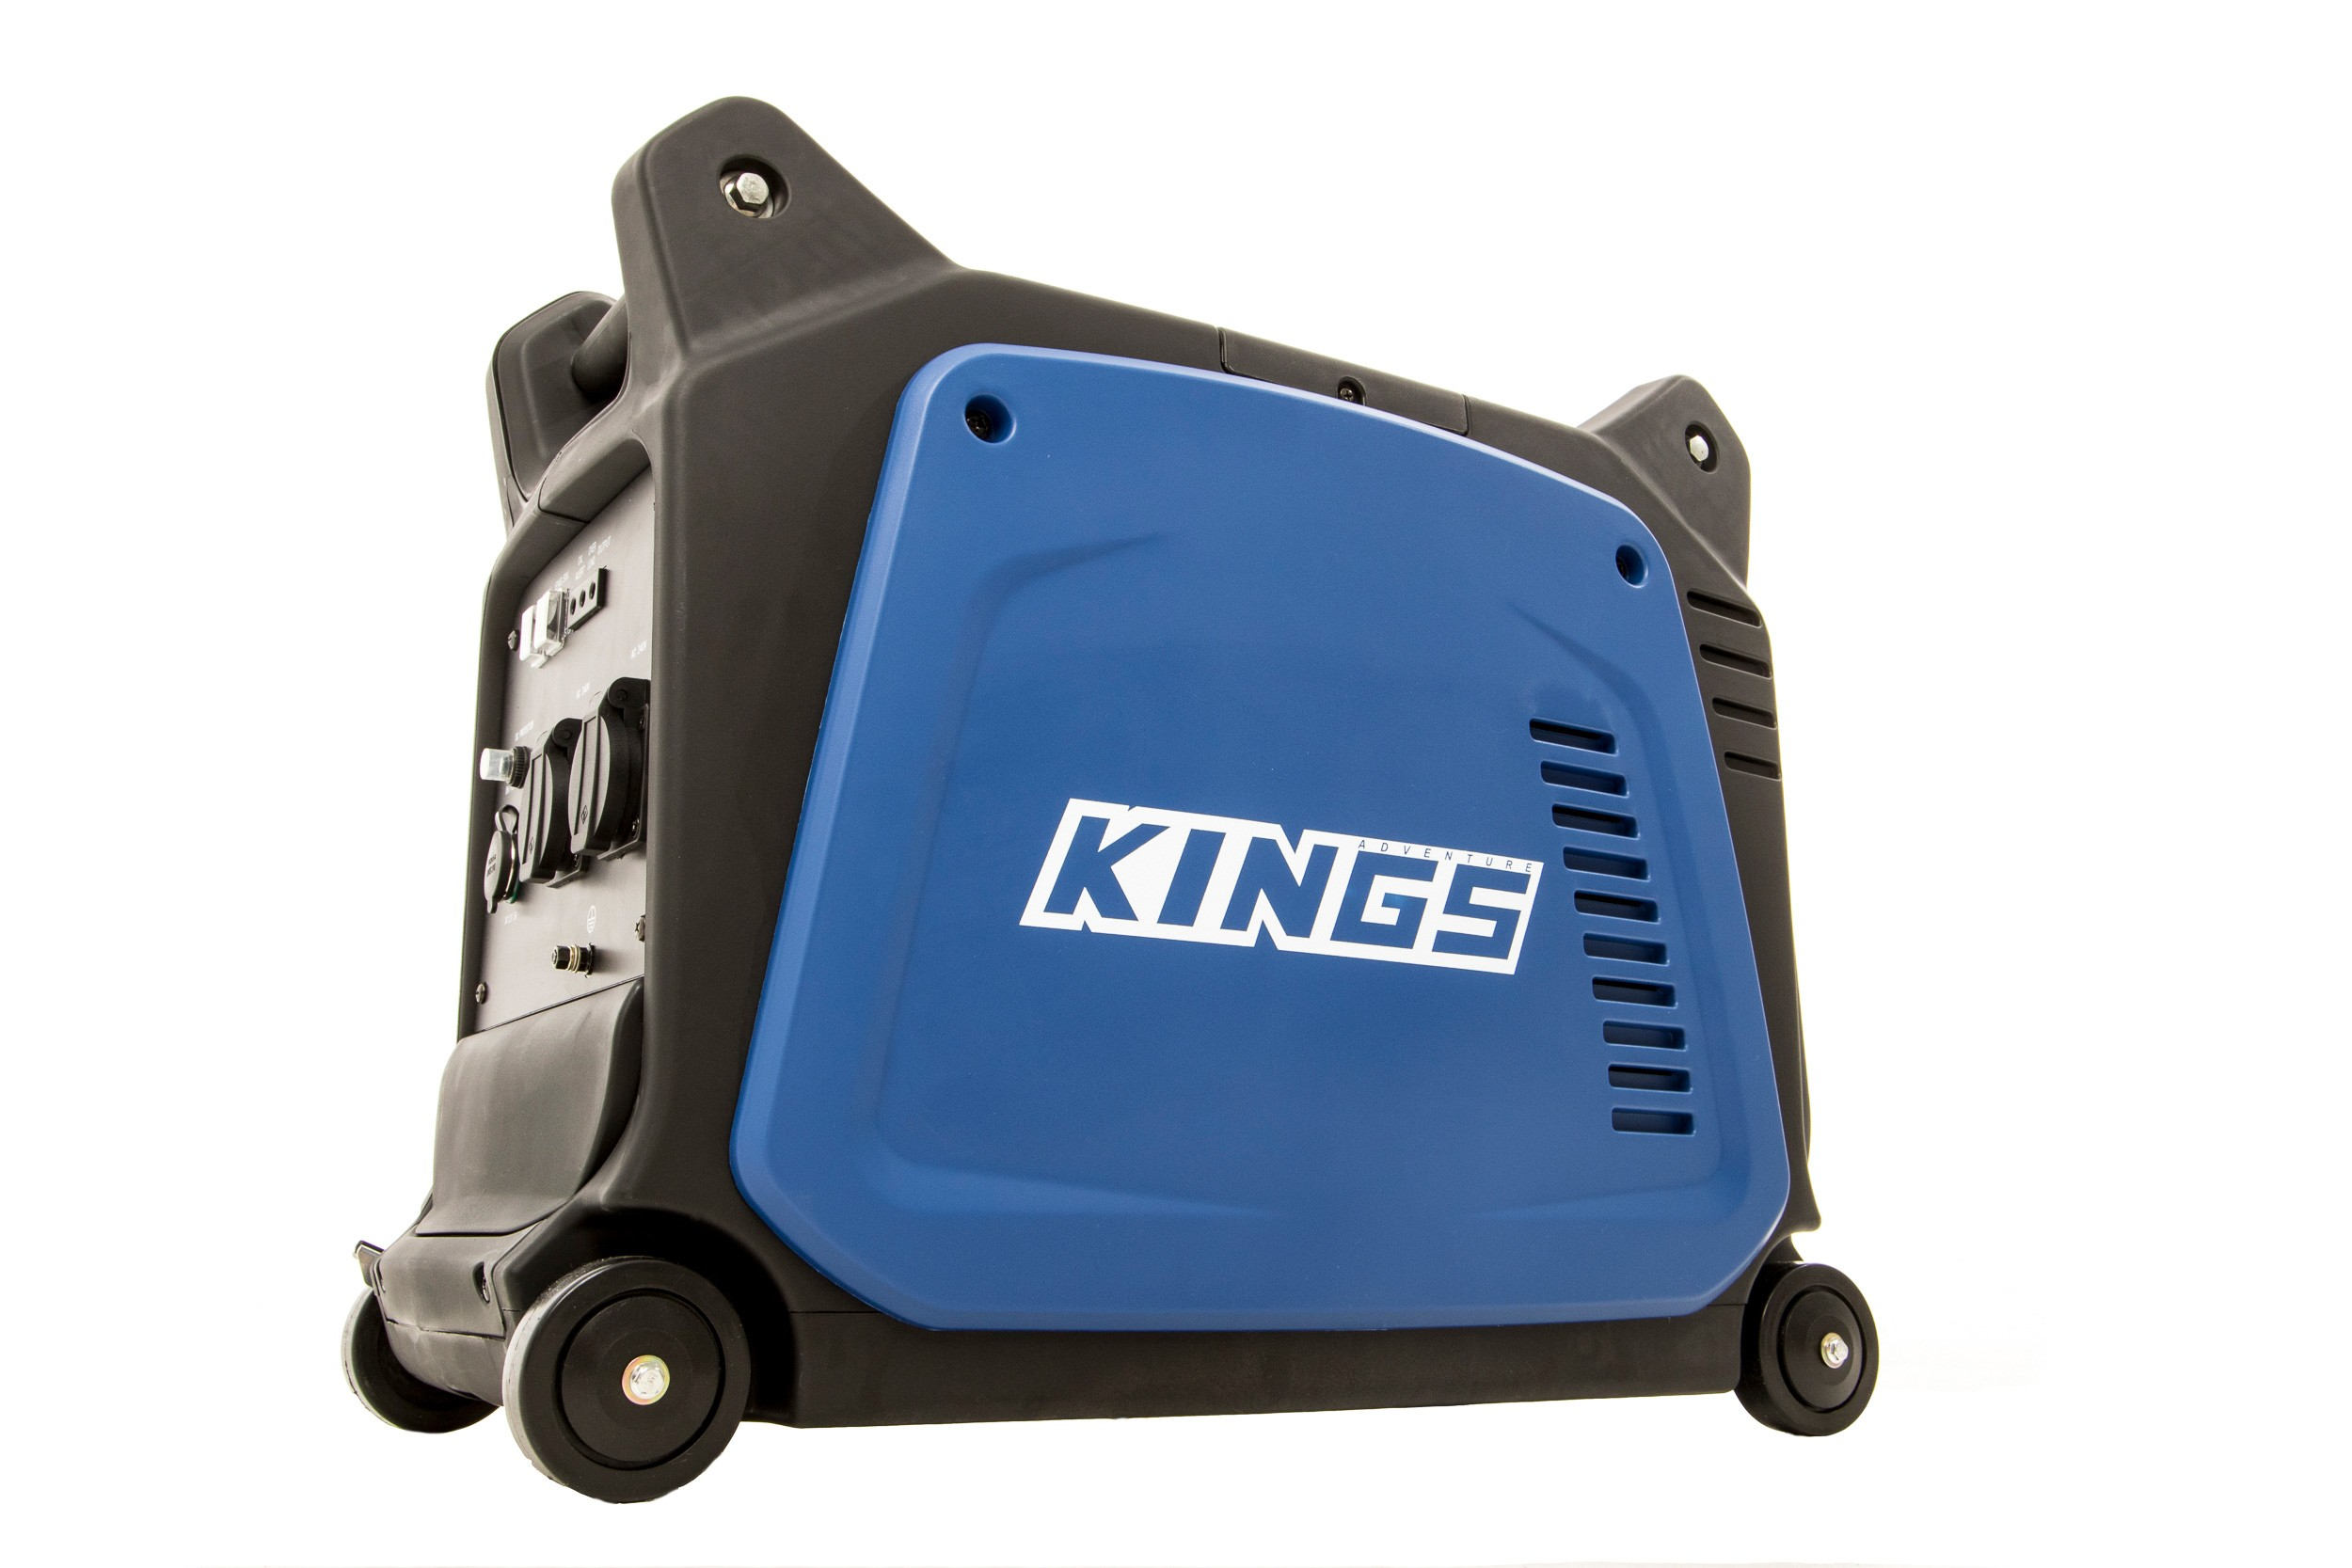 2Kva Kings Generator camping generators | company newsroom of 4wd supacentre